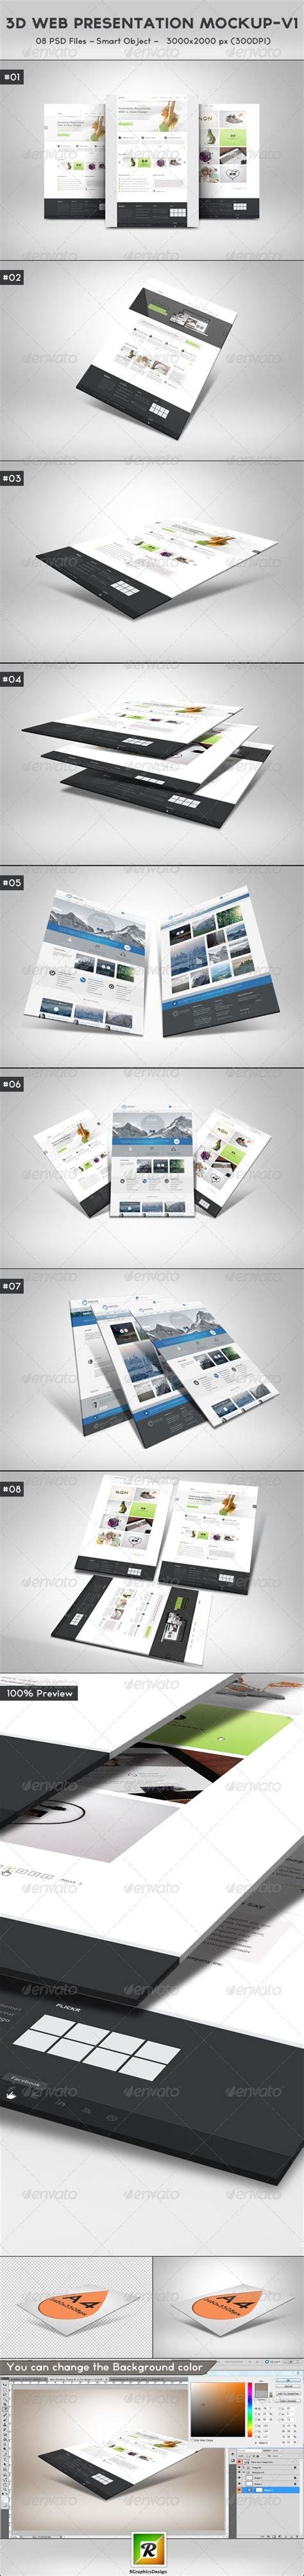 layout editor resolution top 55 ideas about photoshop template on pinterest